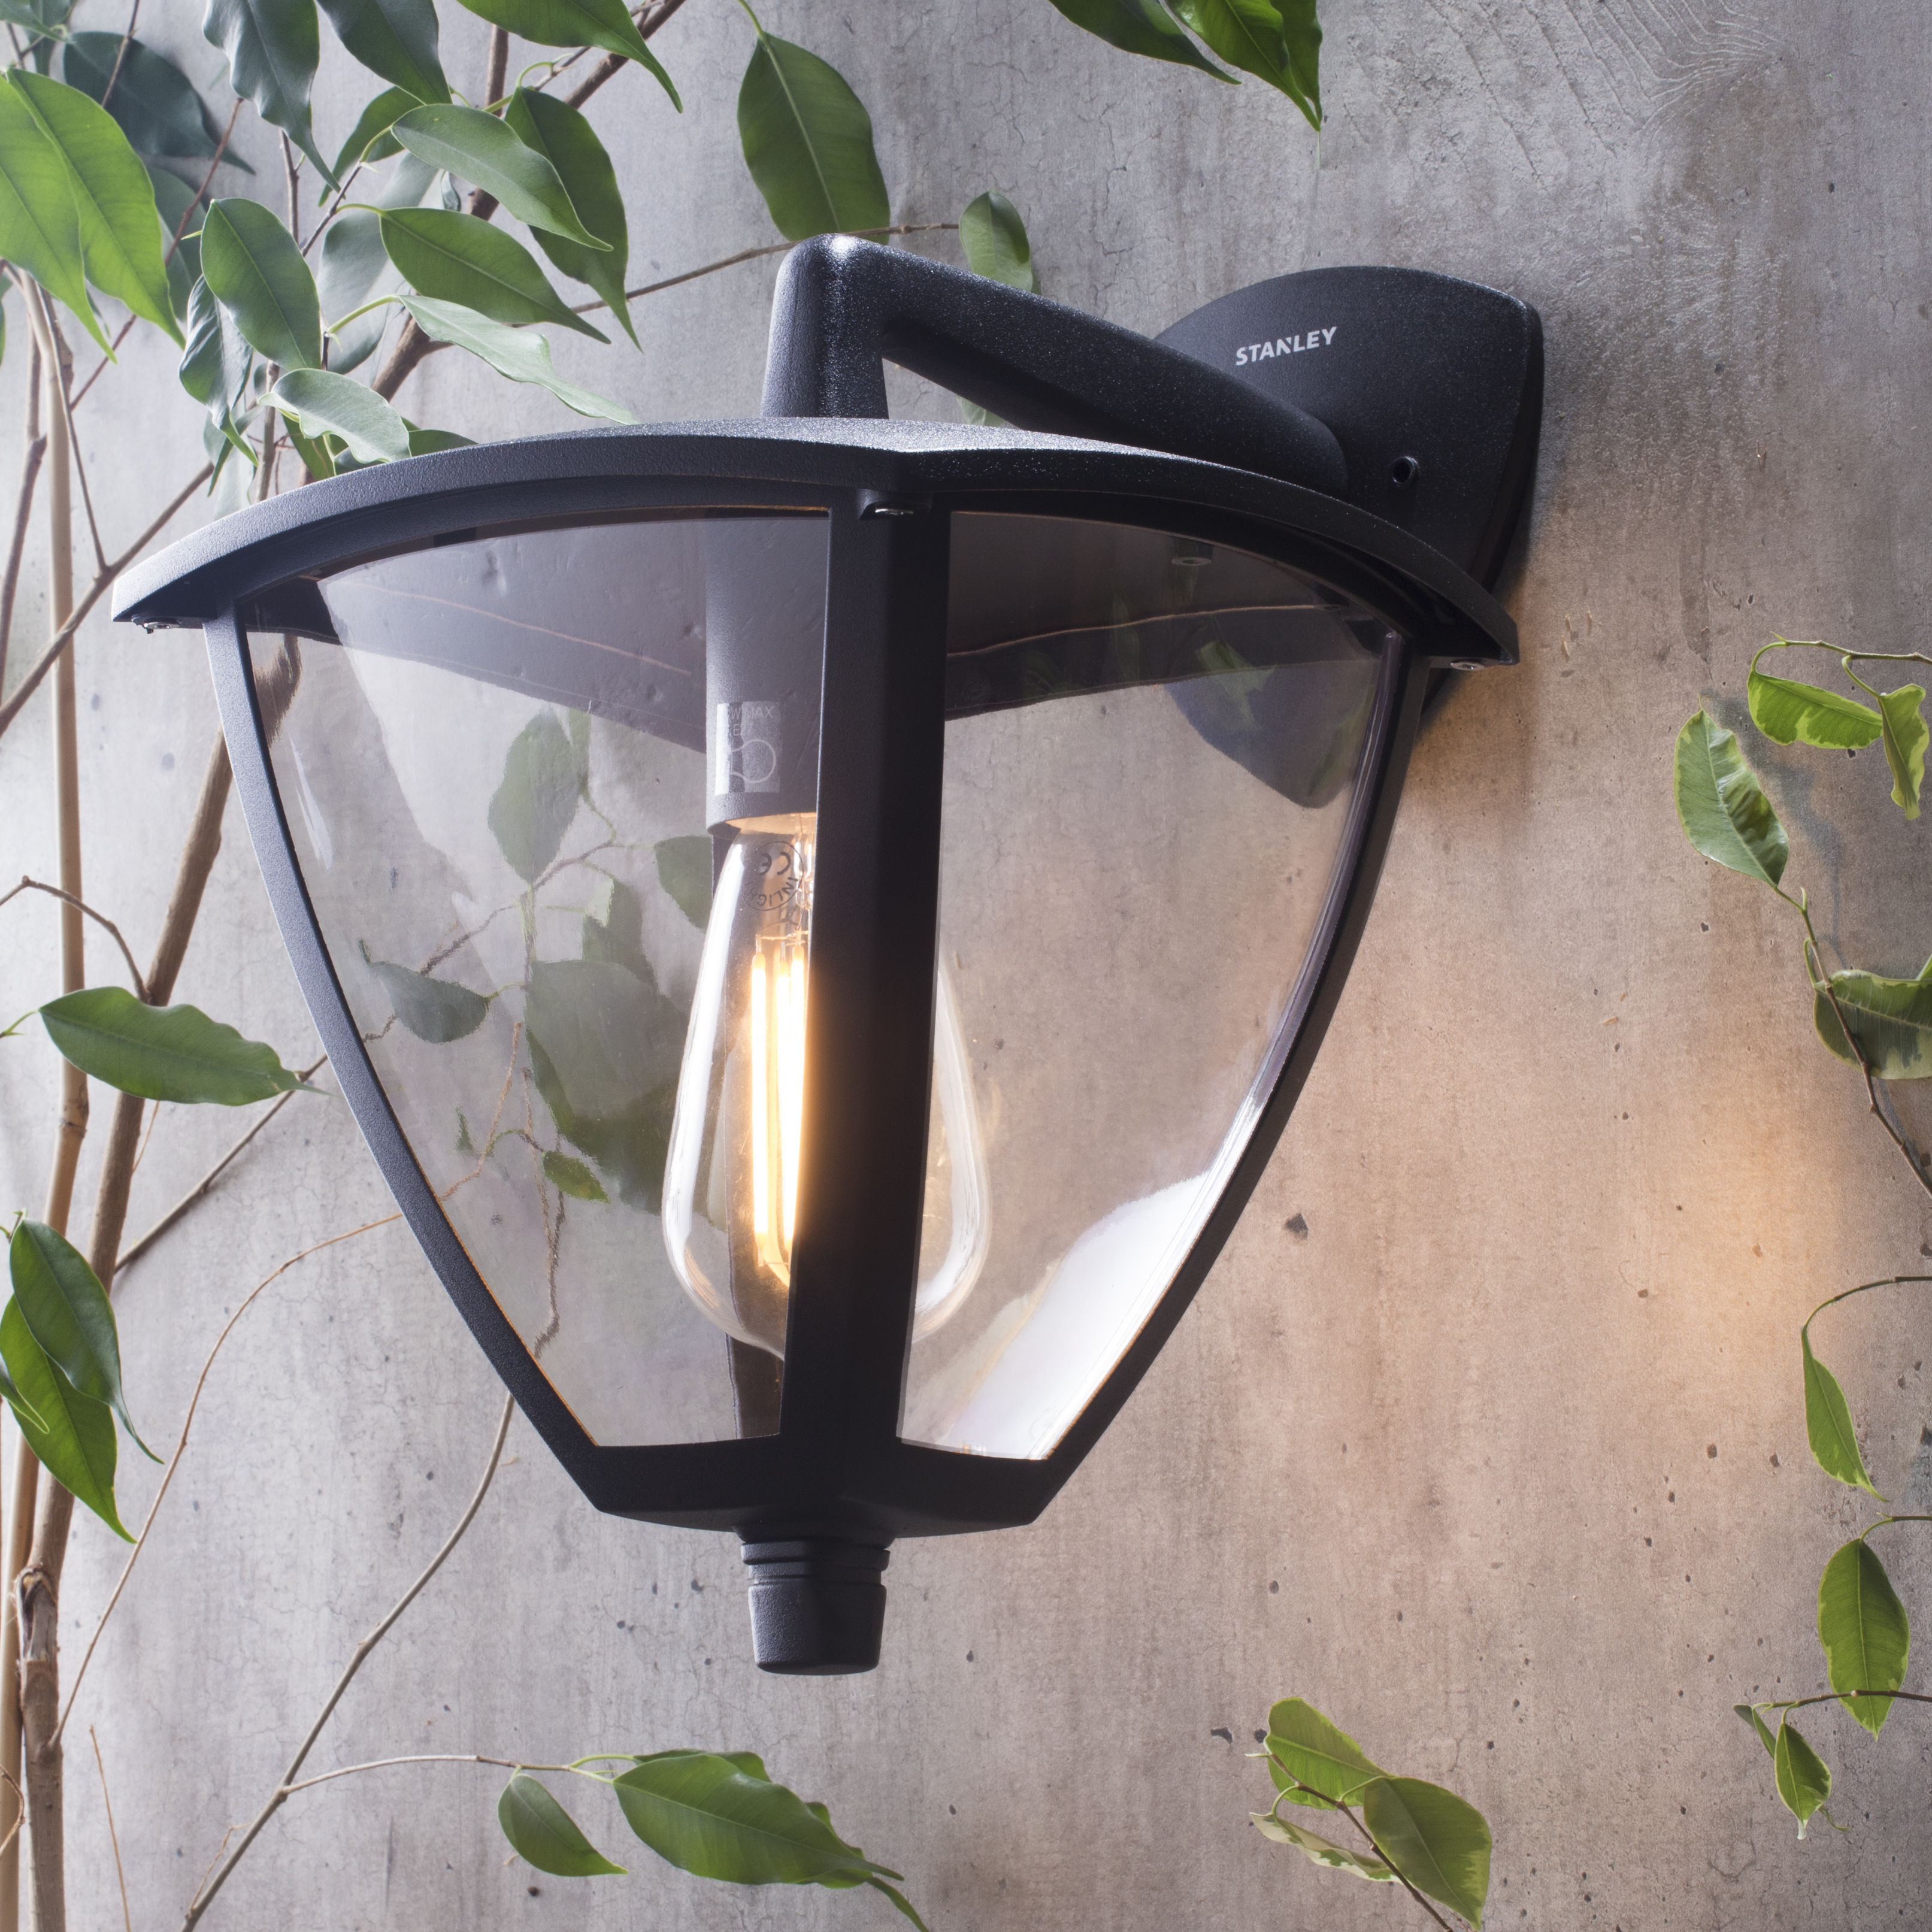 Stanley Outdoor Lighting